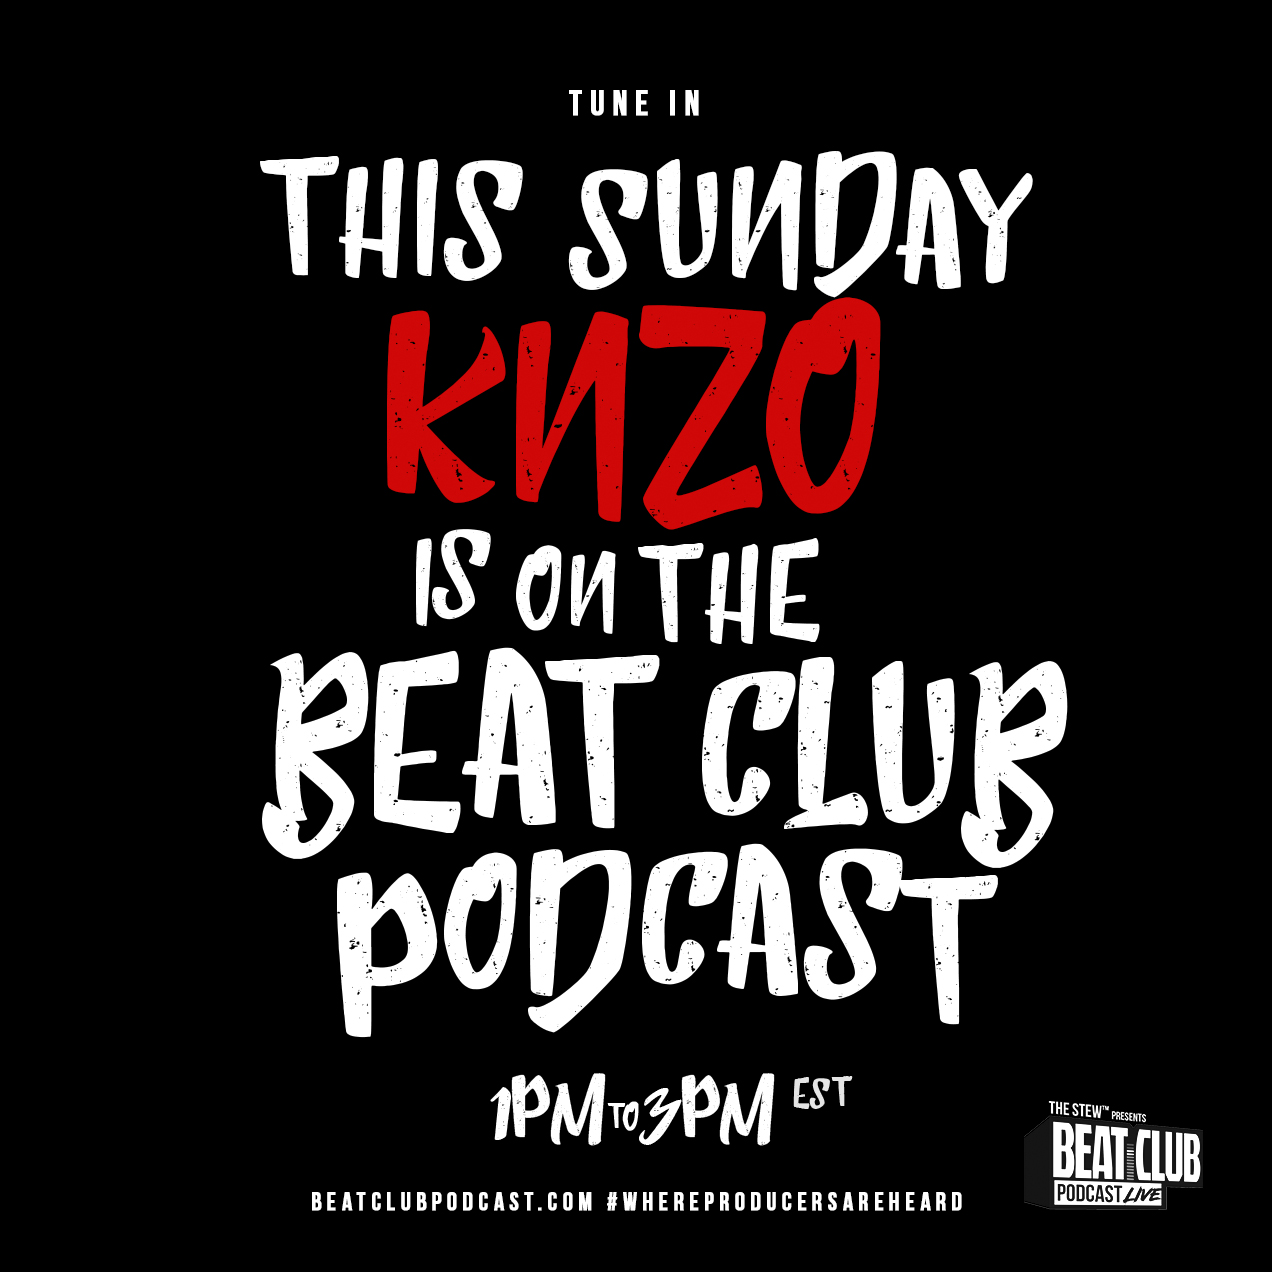 Another #SGFS4 finalist, Knzo, joins the squad for episode 39 of the Beat Club Podcast.